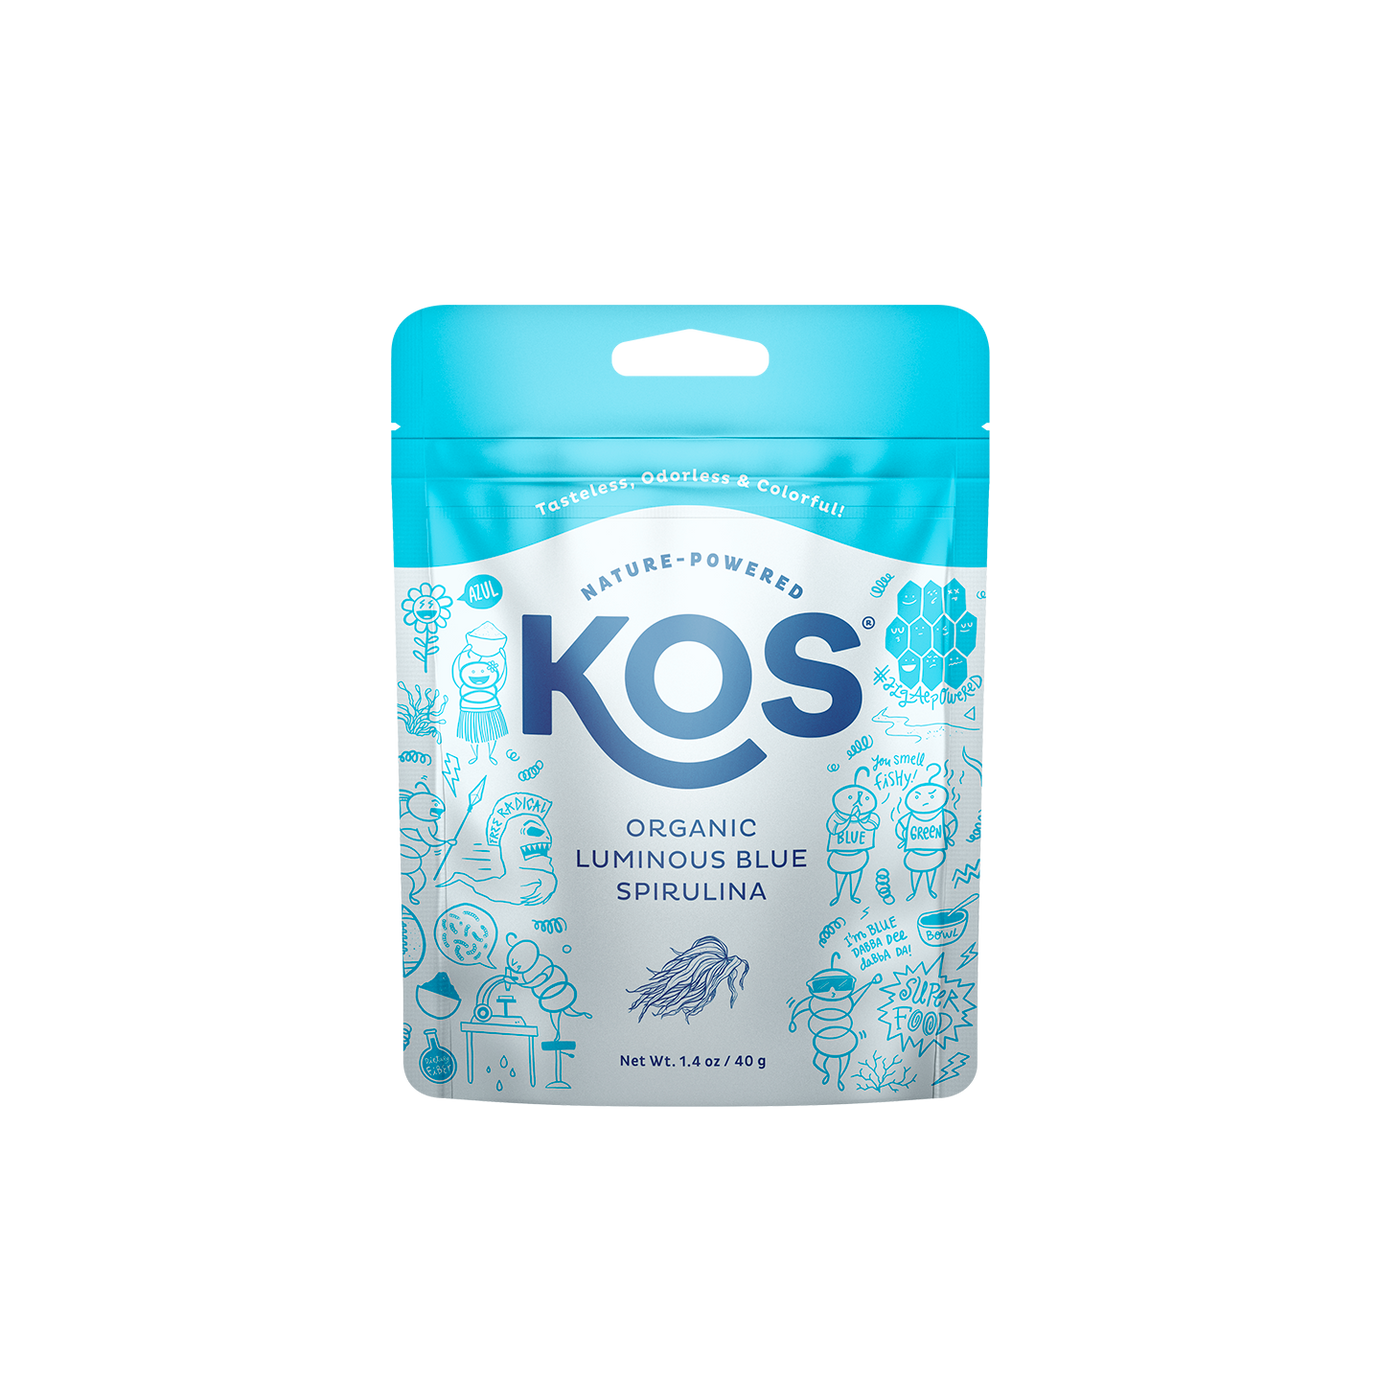 KOS® Organic Luminous Blue Spirulina